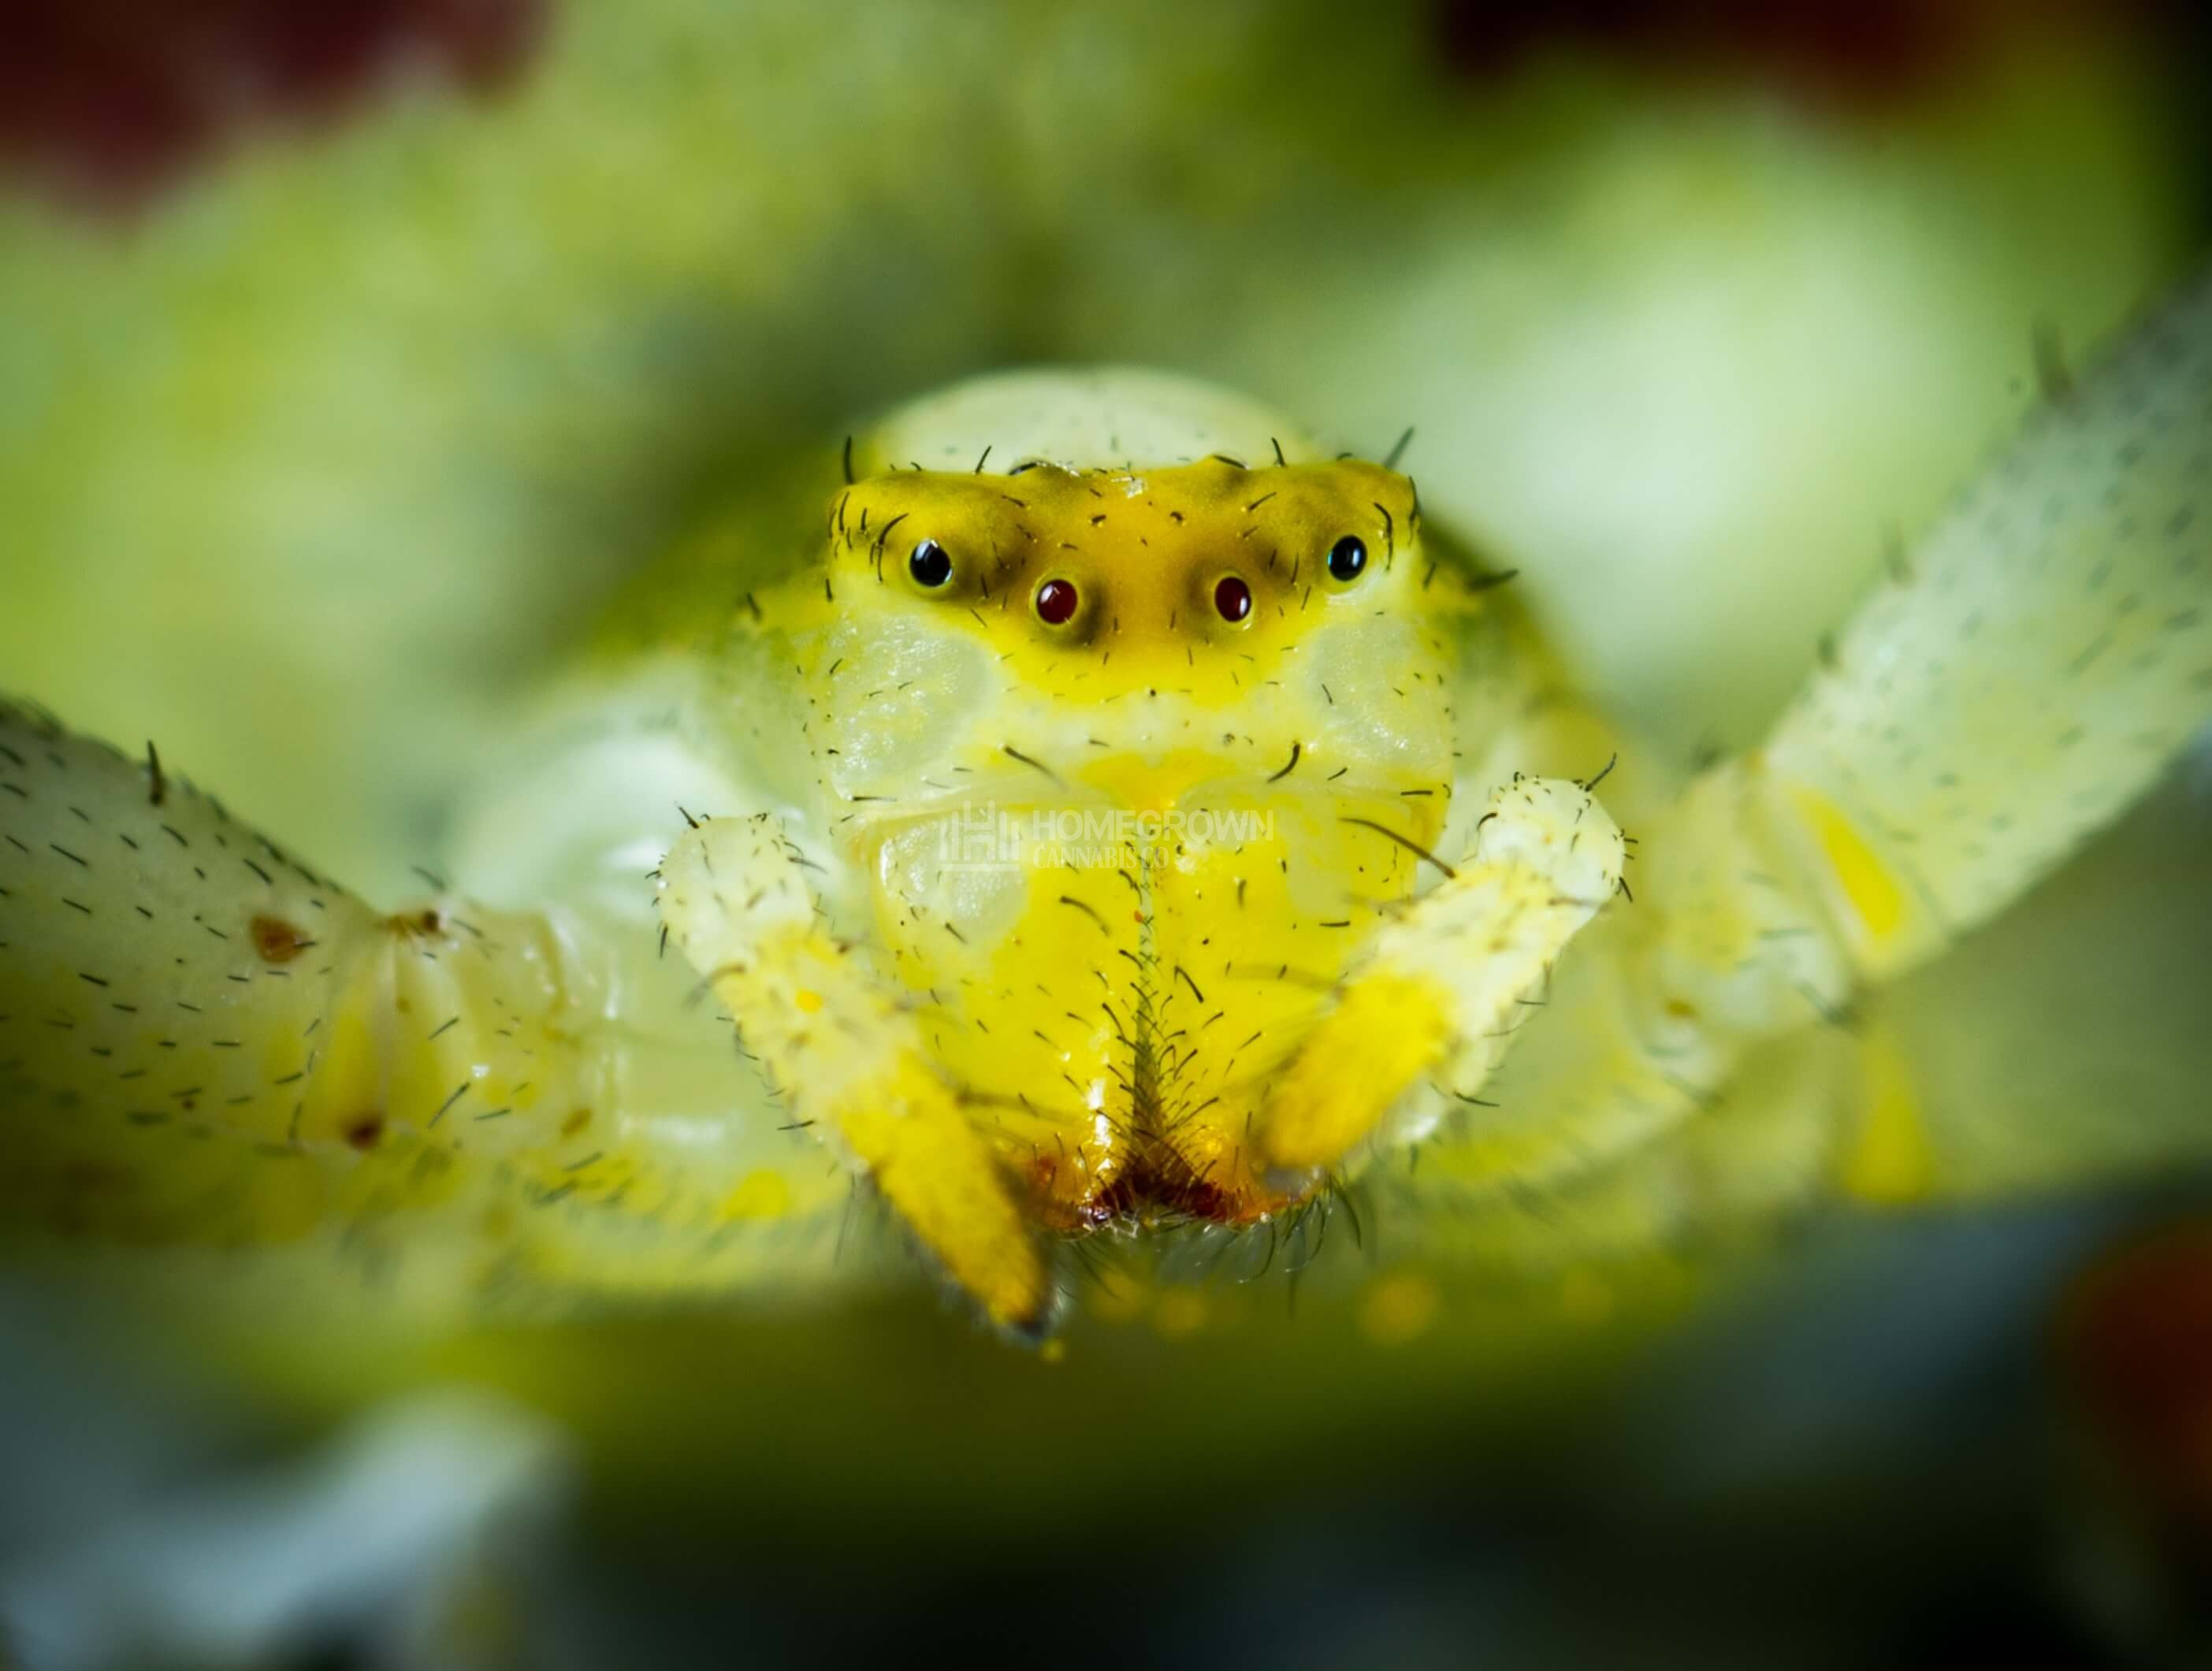 How To Get Rid Of The Dreaded Spider Mites On Plants